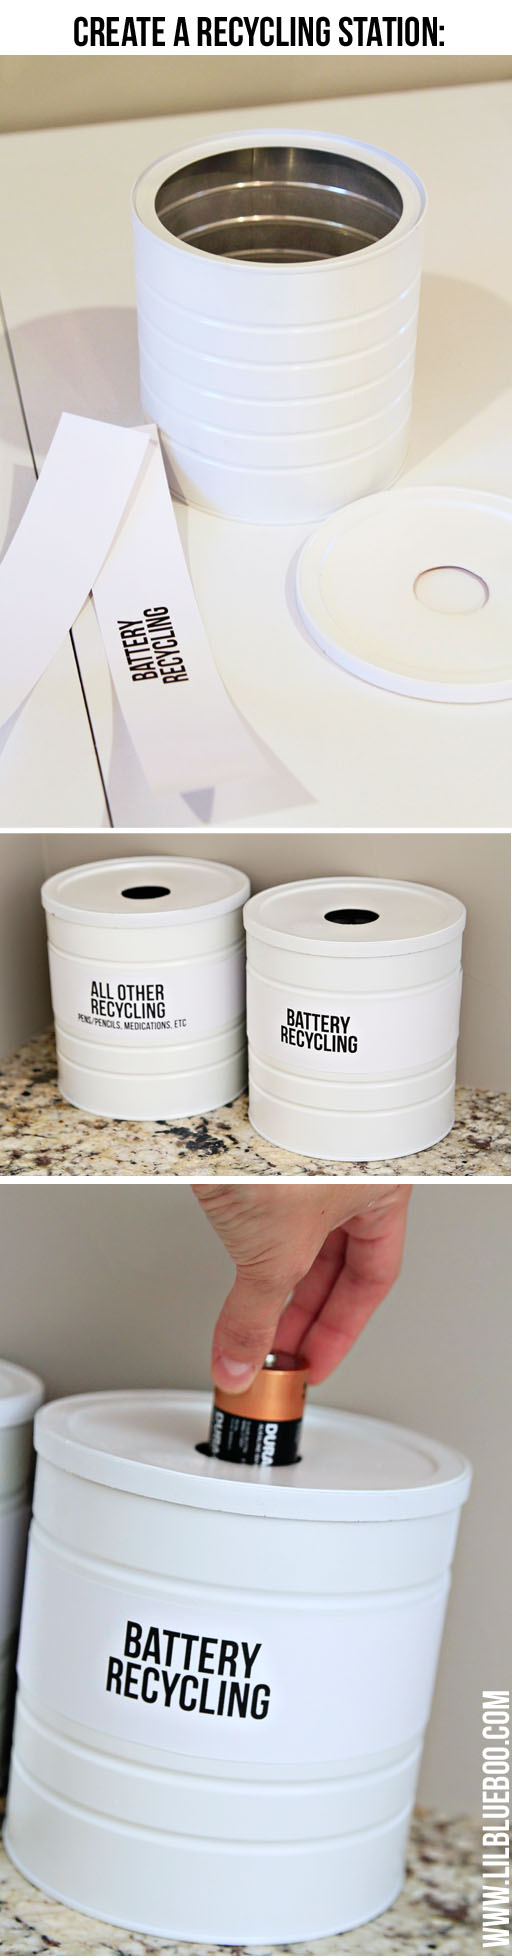 create a recycling station for batteries and other items via lilblueboo.com #recycle #tutorial #DIY